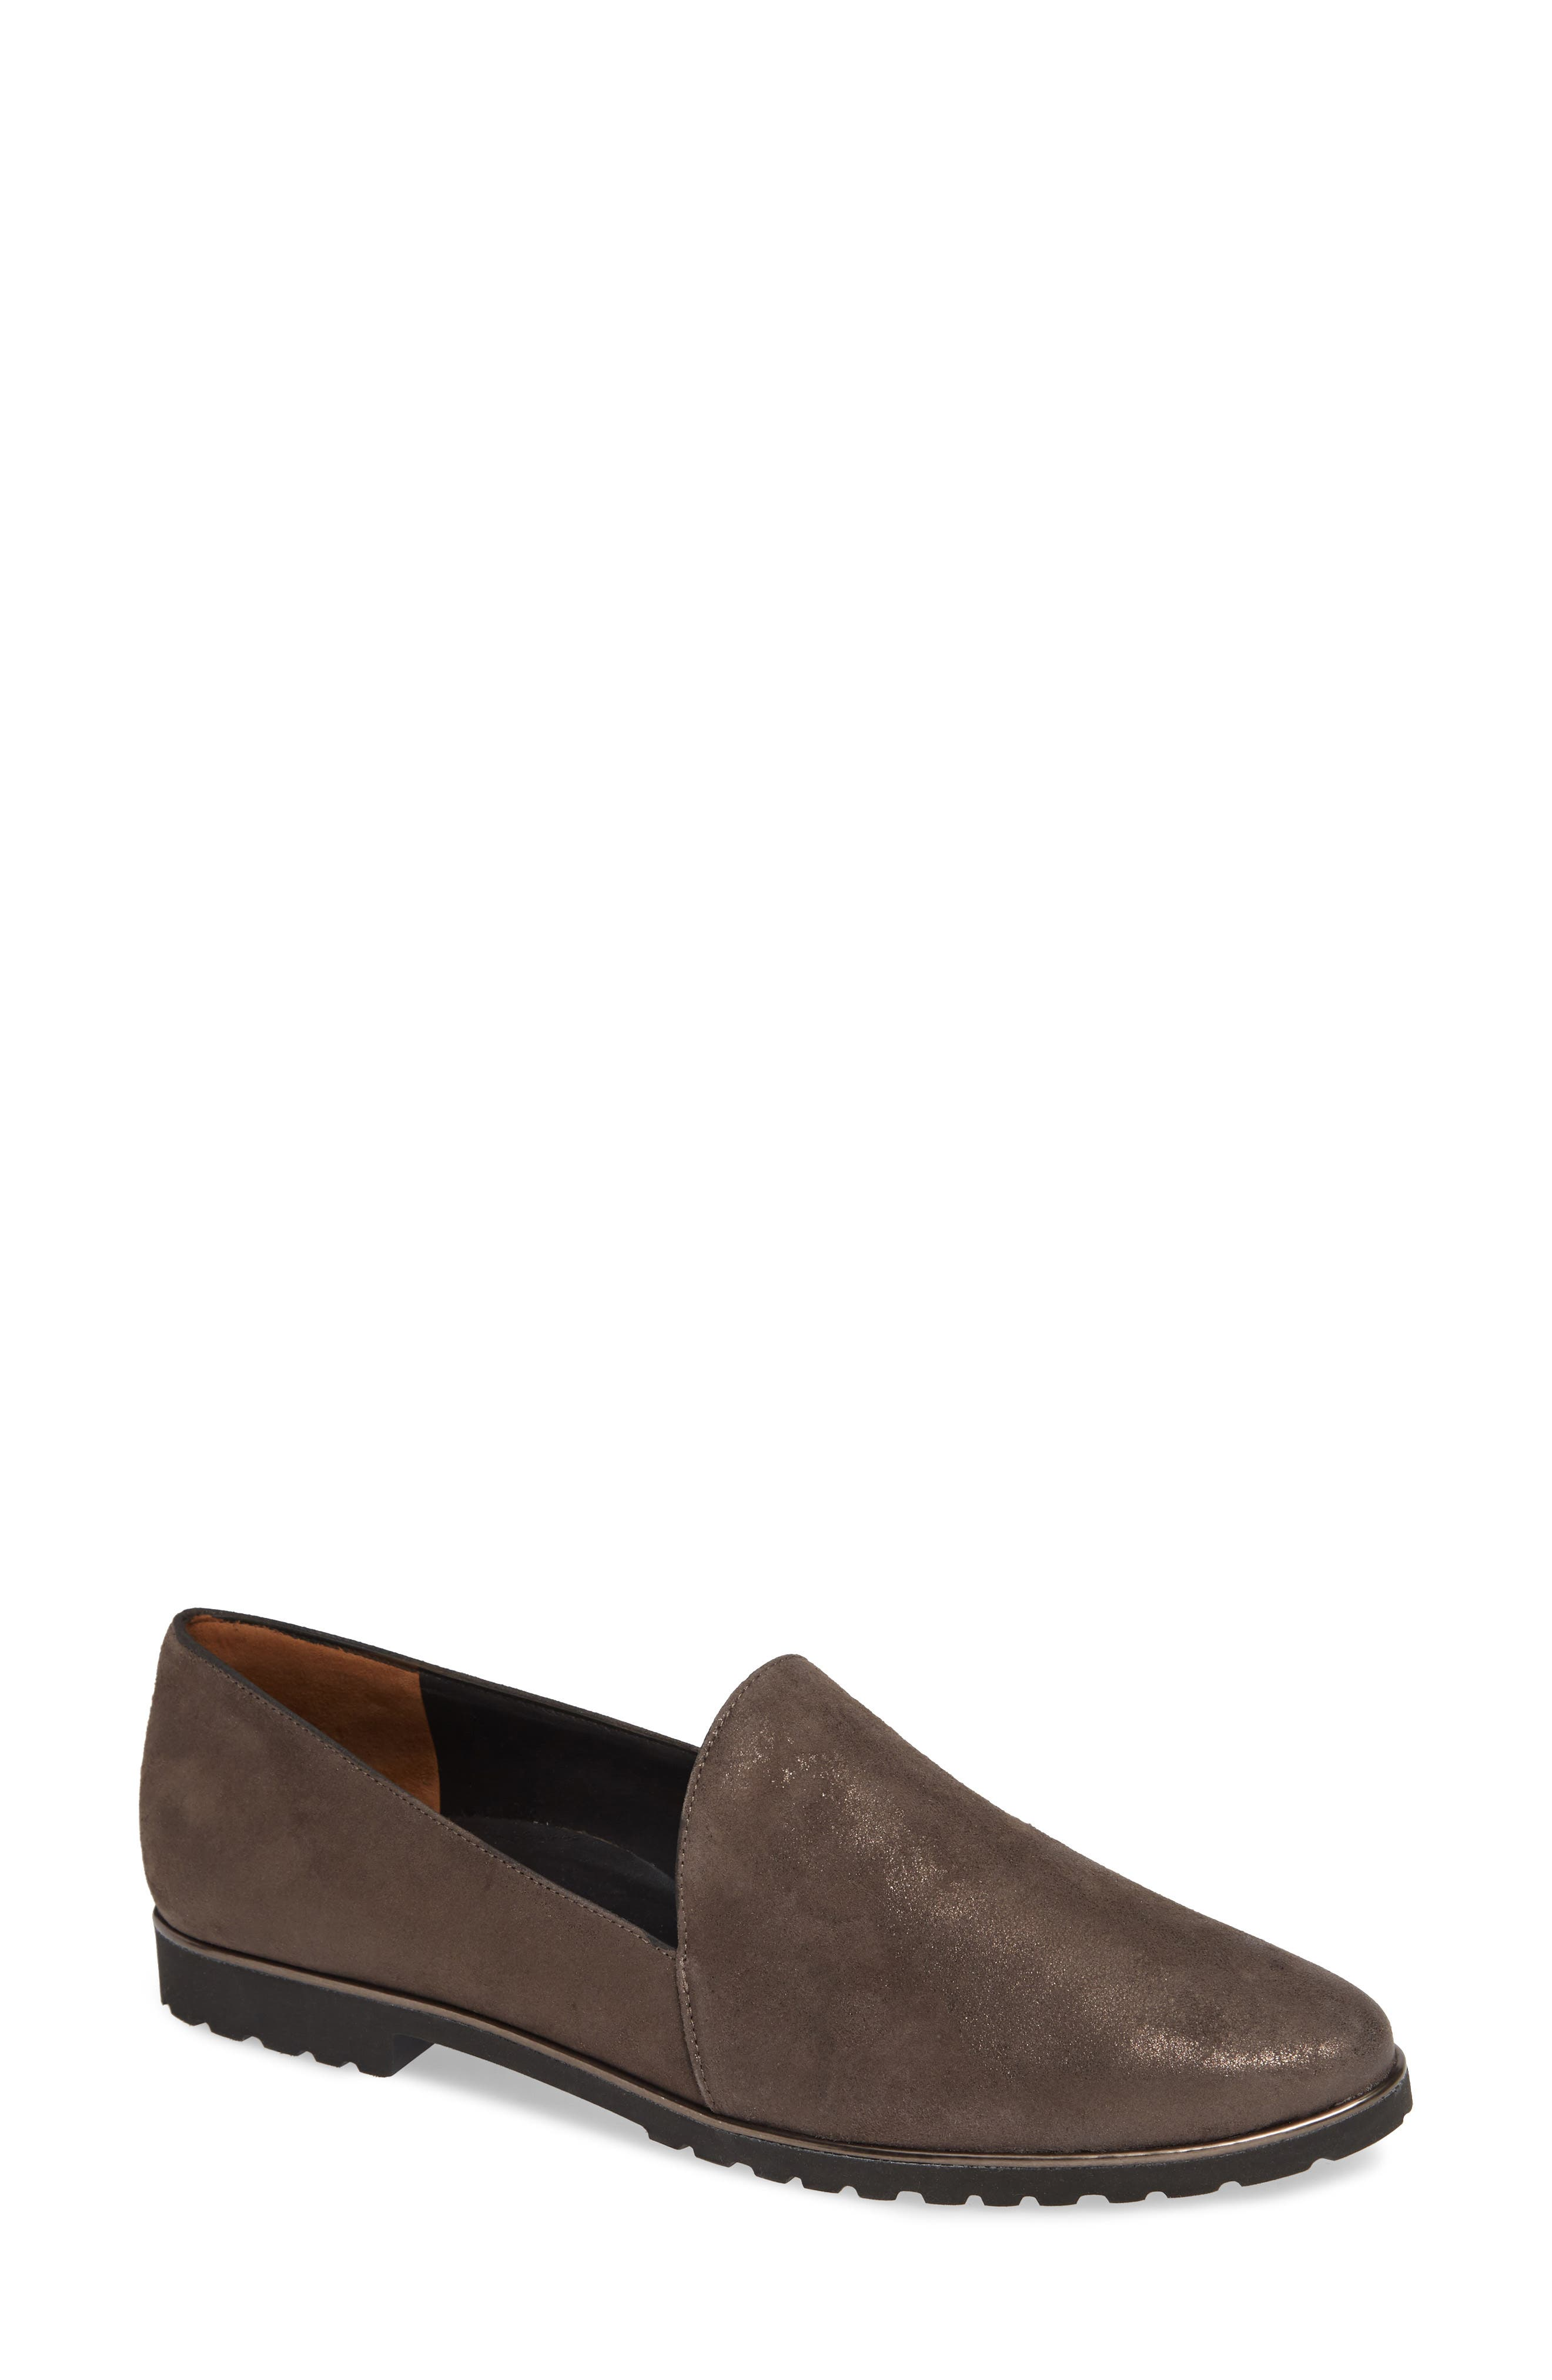 Paul Green Uptown Loafer - Brown